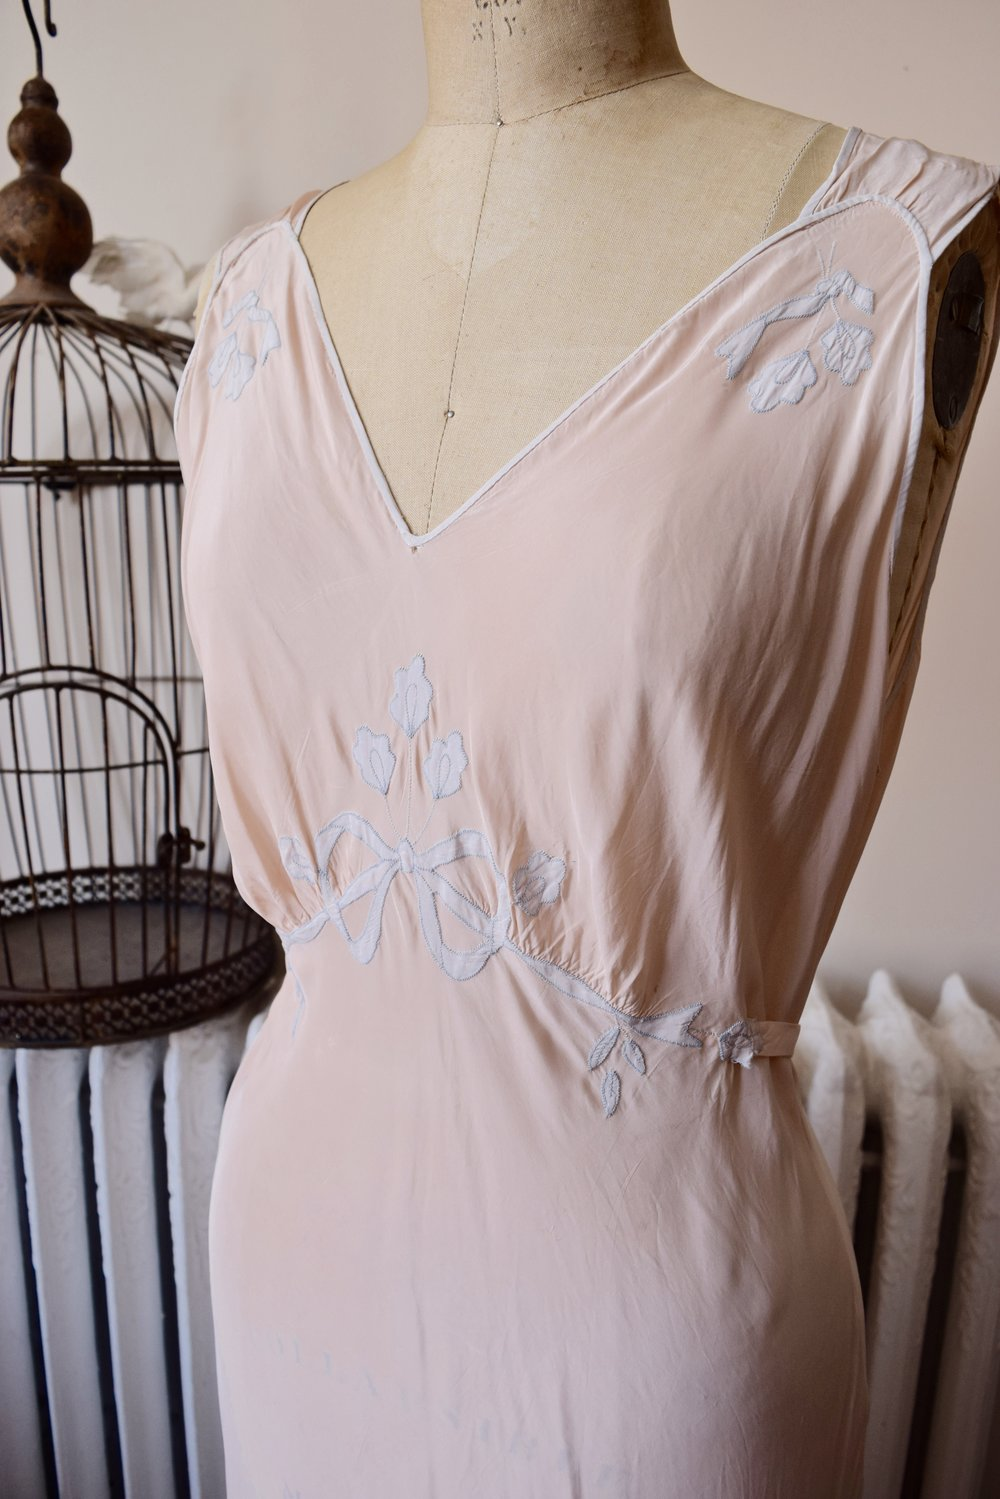 Pandora- 1930's long peachy-pink bias cut gown.